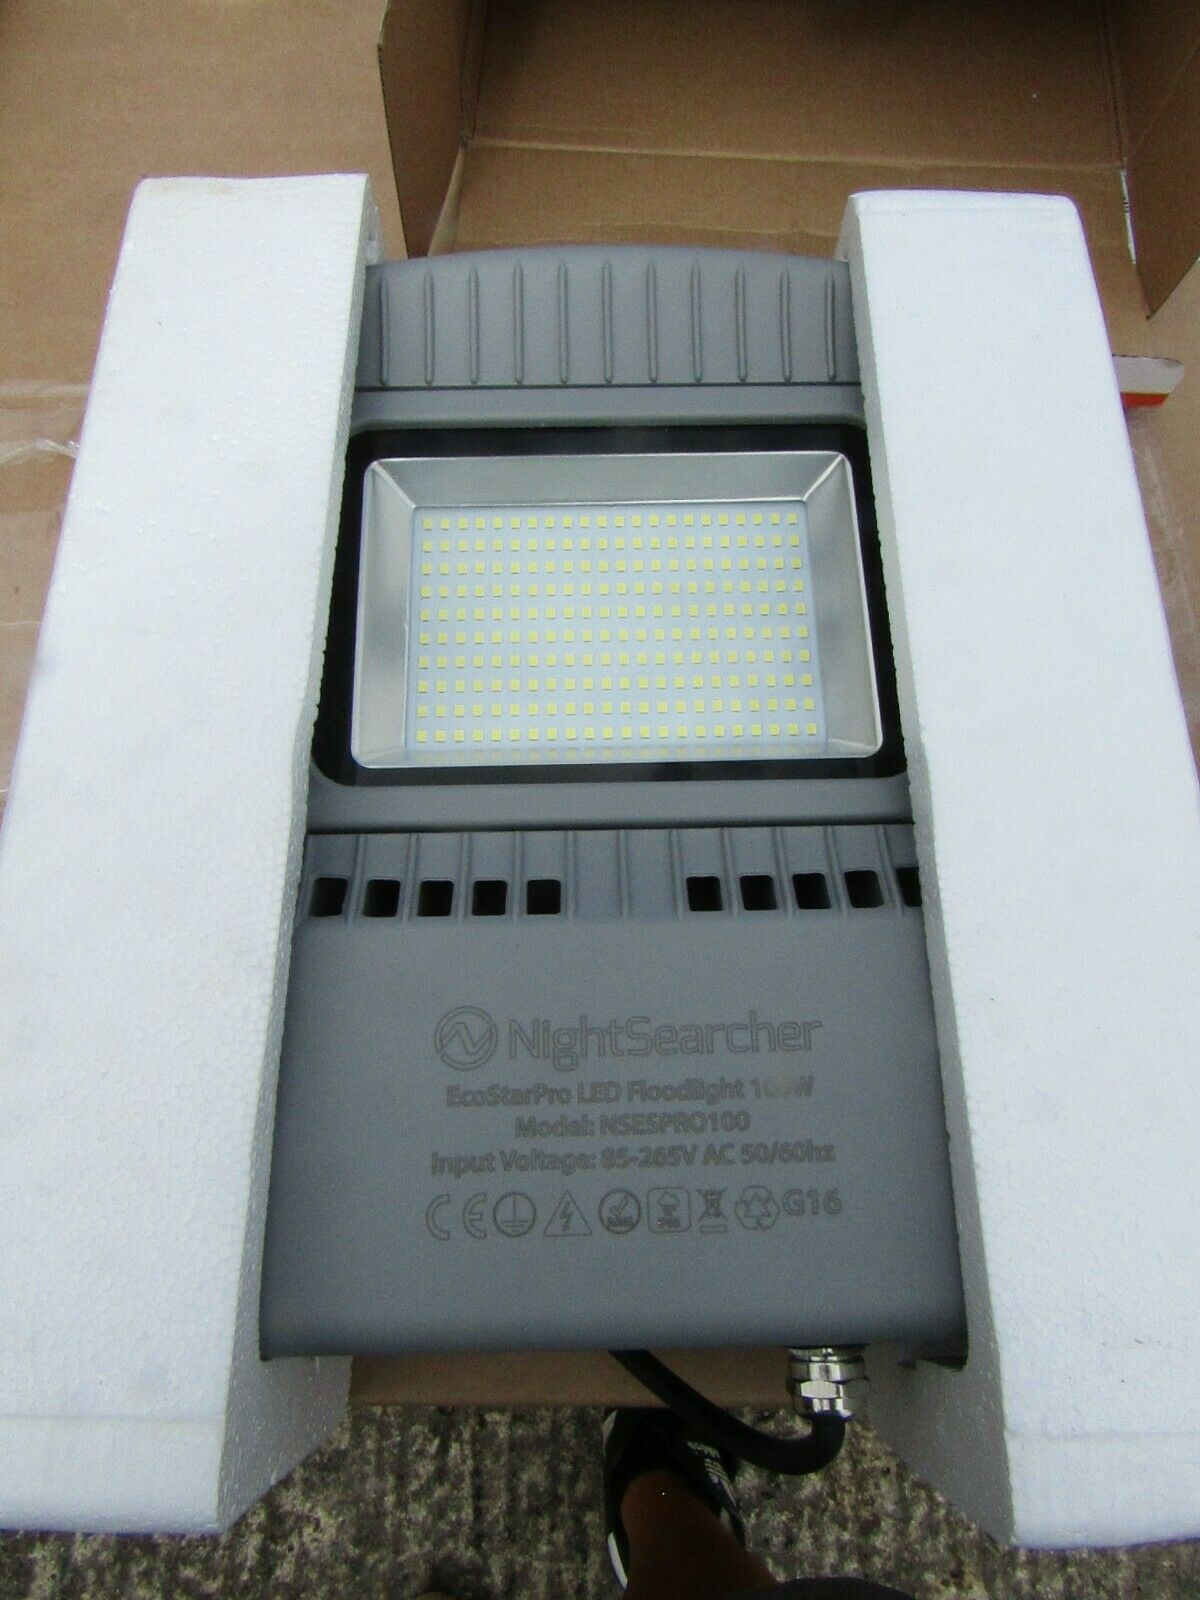 Proyector de LED EcoEstrella Nightsearcher, 2 LED, 100W, 10000lm, IP65 H9CB 8268683